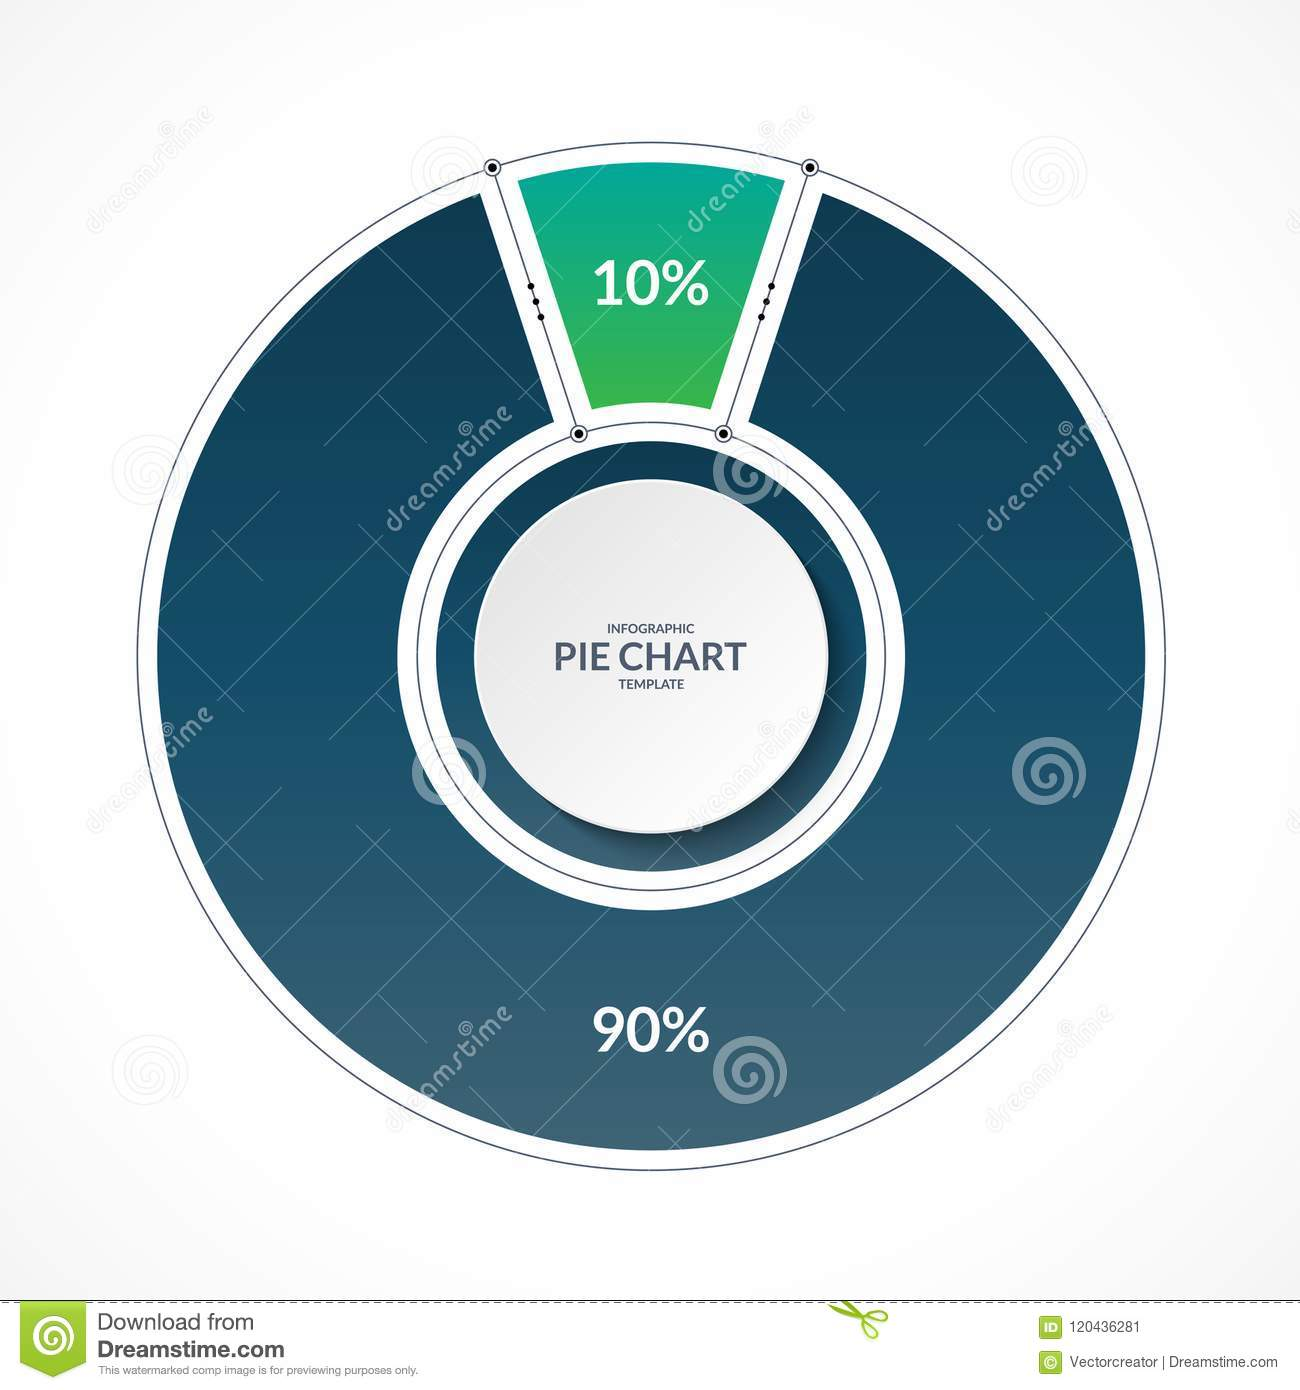 Infographic Pie Chart Circle In Thin Line Flat Style Share Of 10